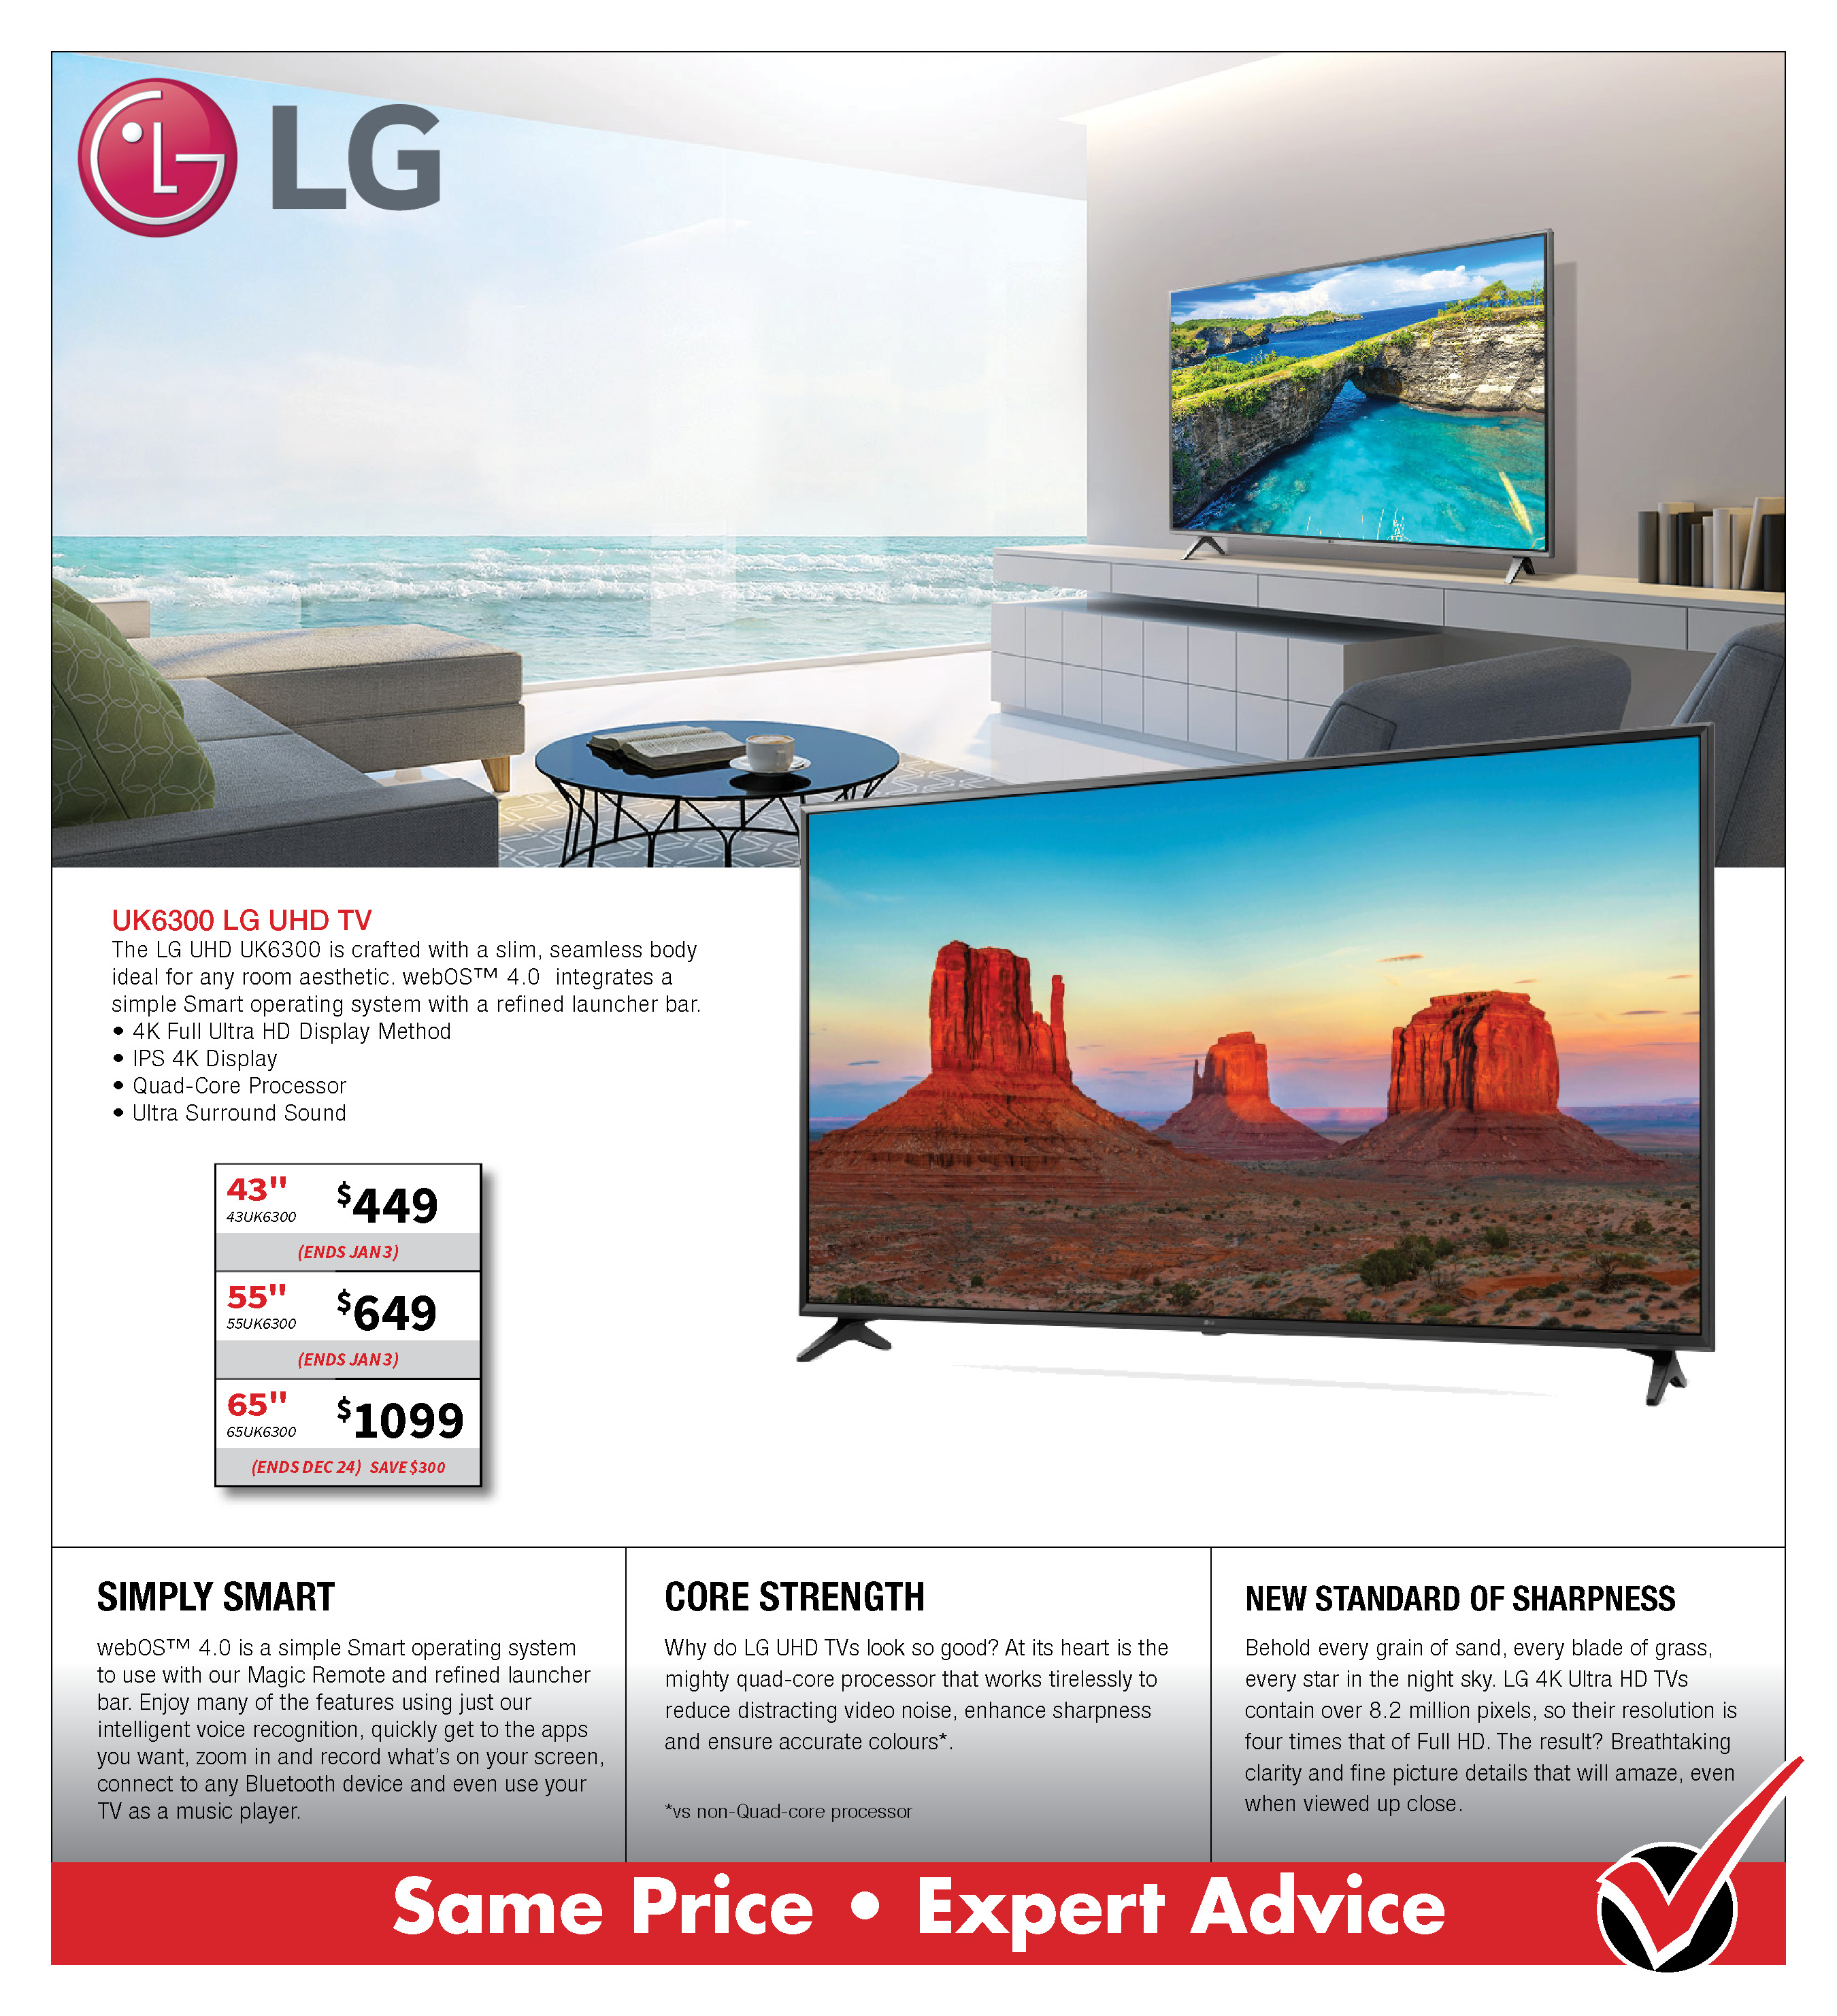 LG UK6300 UHD TV